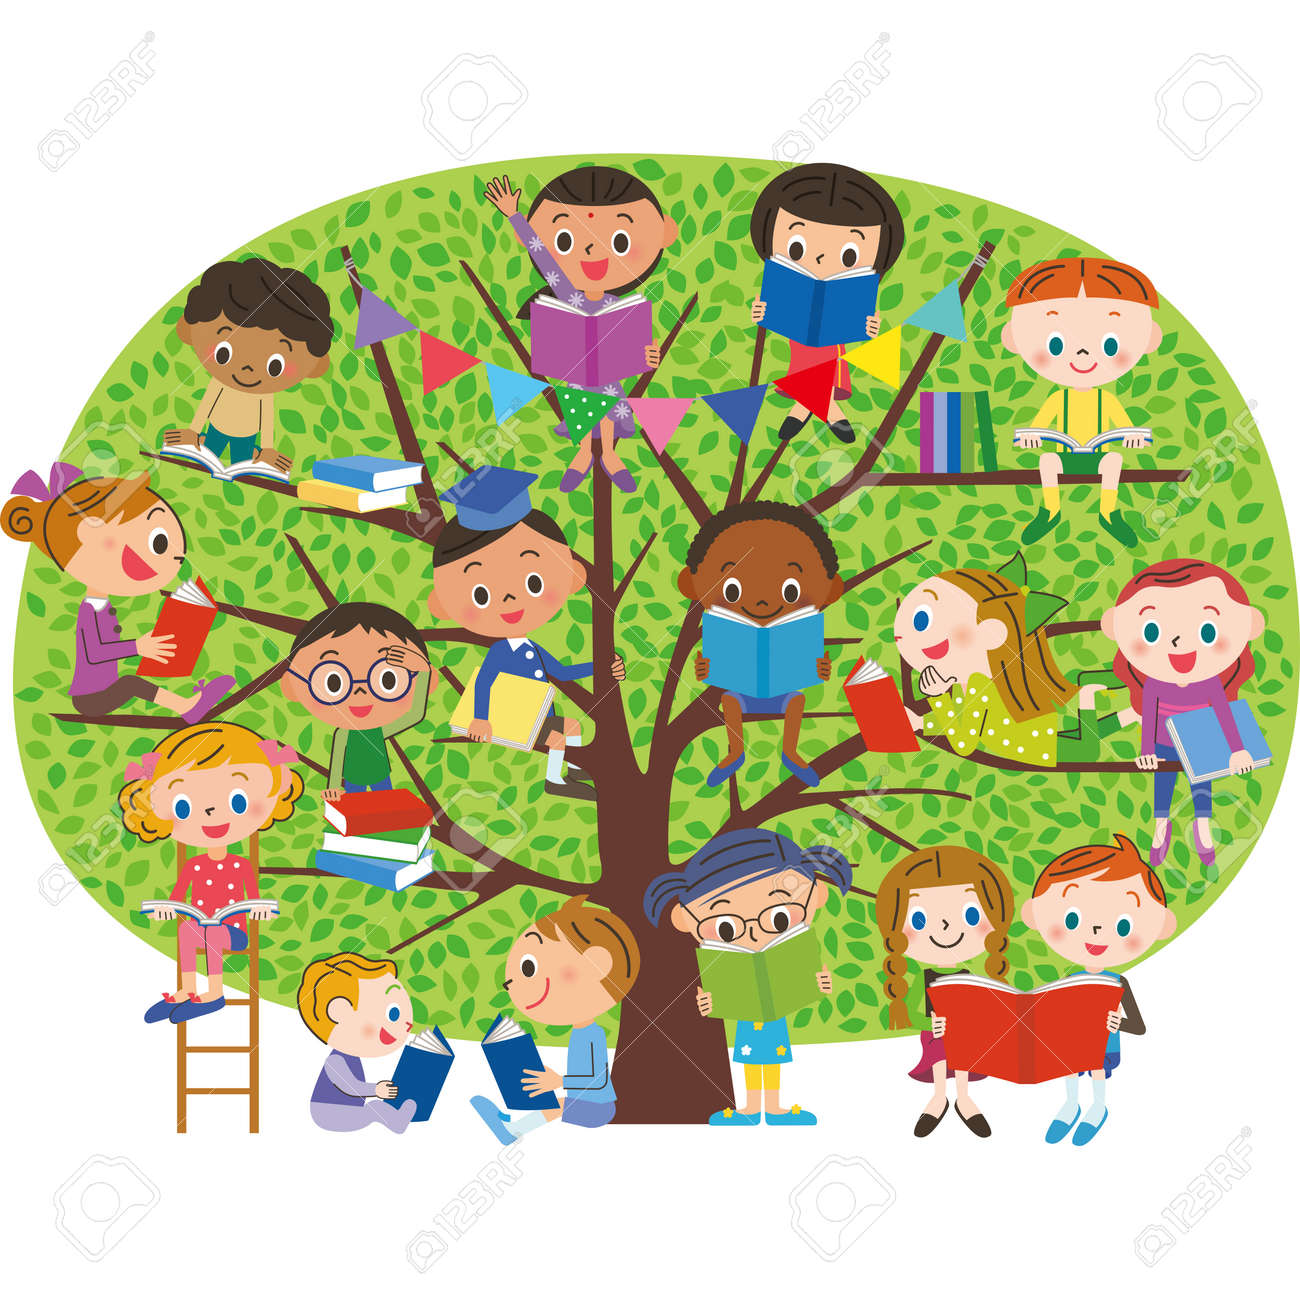 Children to read a book in the fresh green of the tree - 84974848